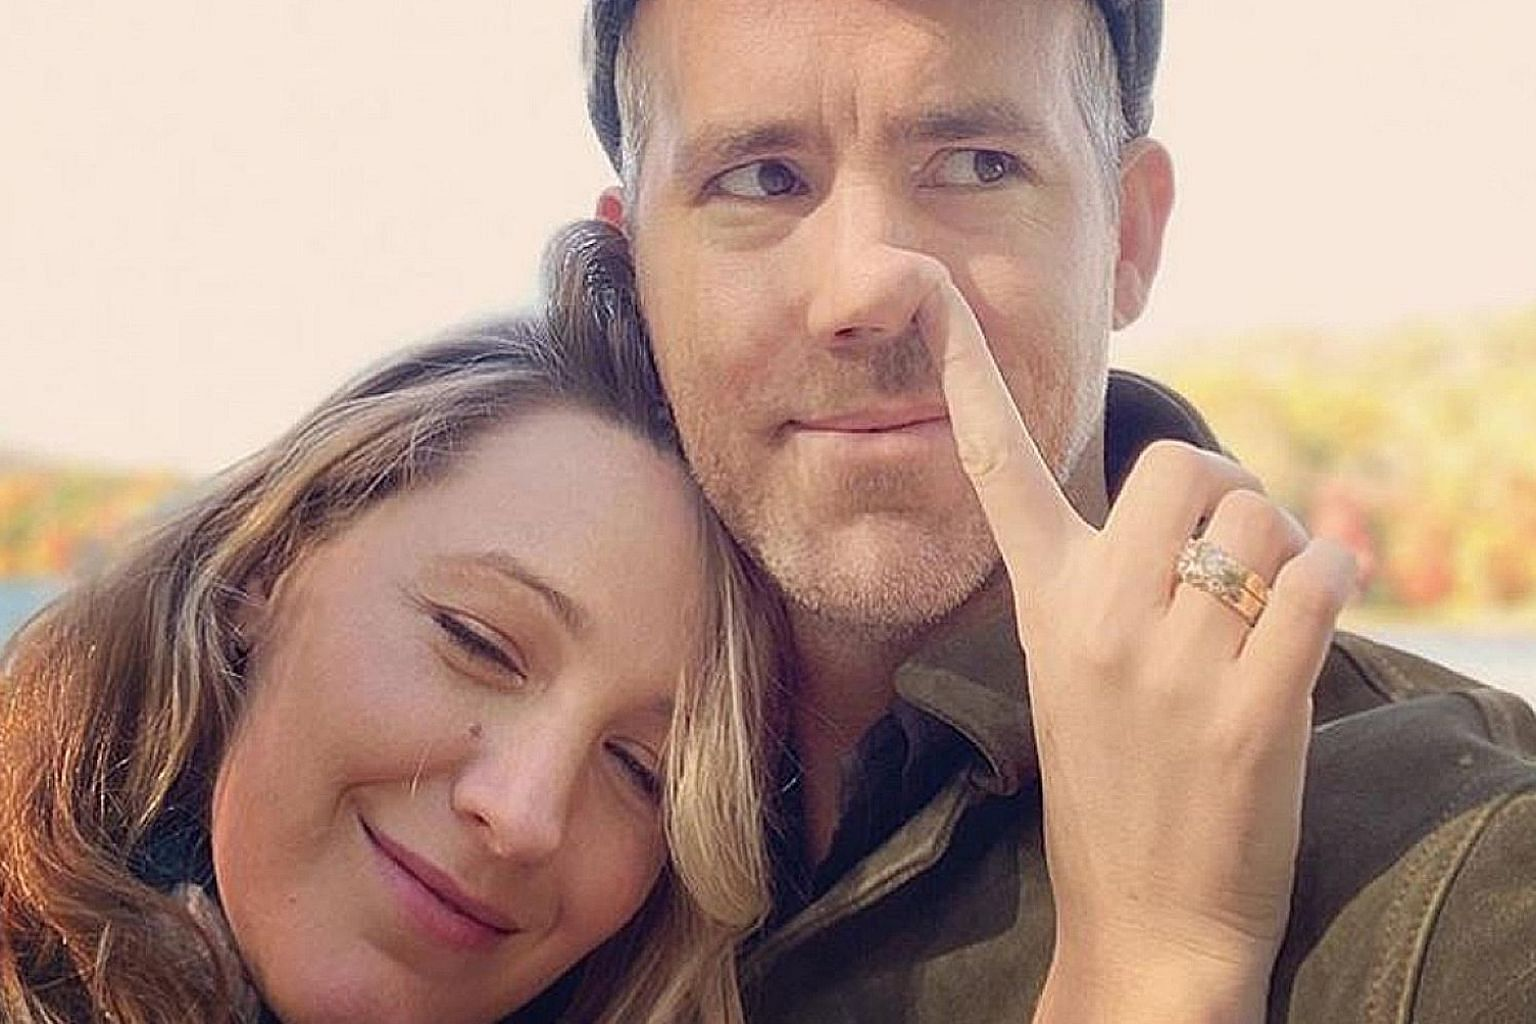 HAND-PICKED: Hollywood celebrity couple Ryan Reynolds and Blake Lively are known for trolling each other on social media. So it was no surprise that Lively, who has just given birth to their third child over the summer, would troll her husband when h